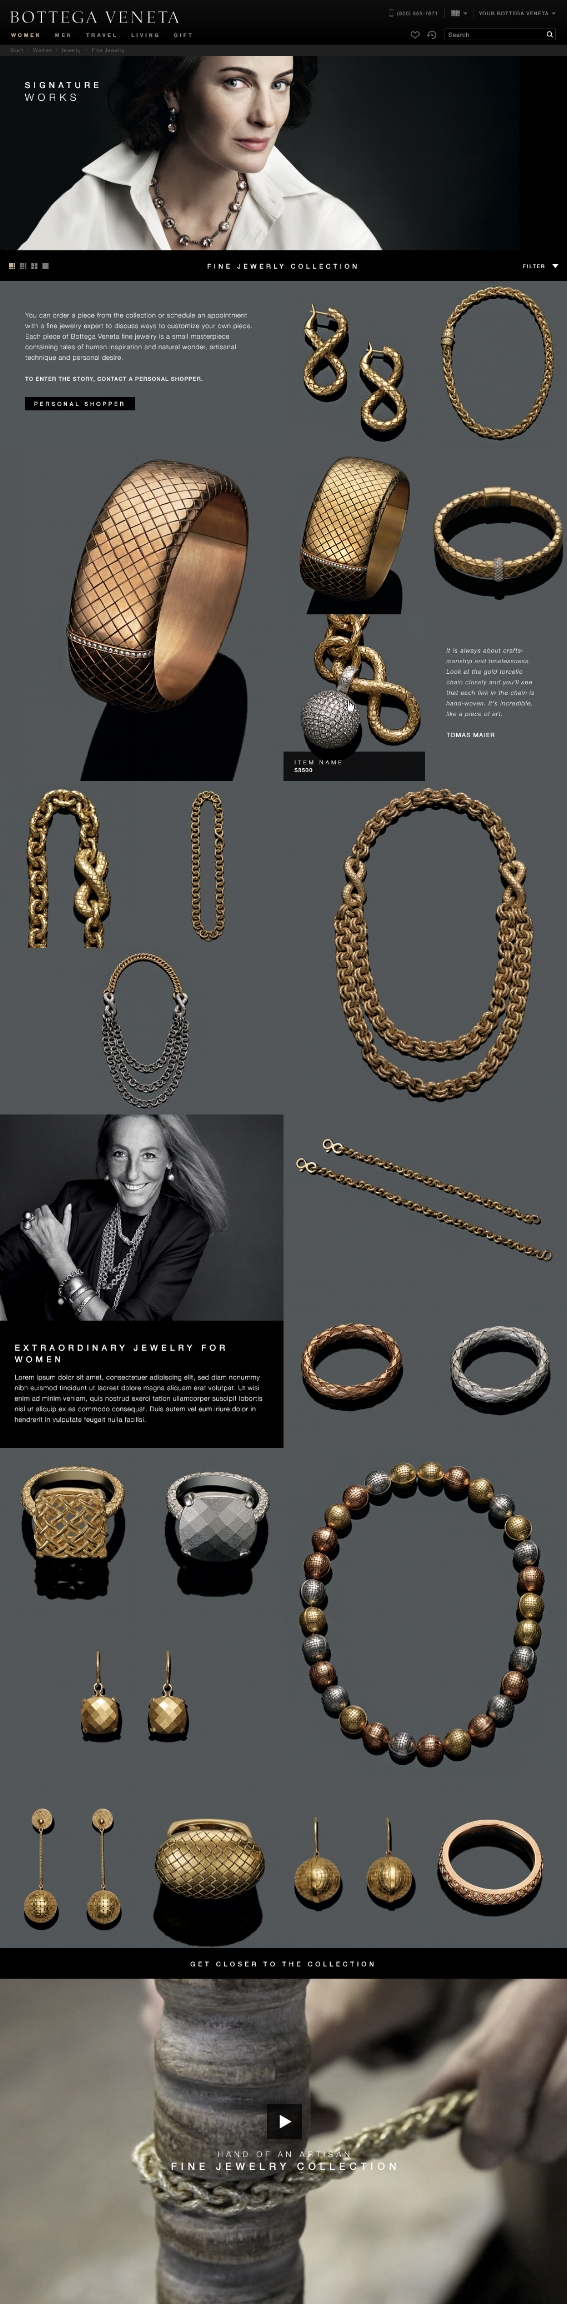 4grid_FineJewelry_Editorial Grid_w_images.jpg